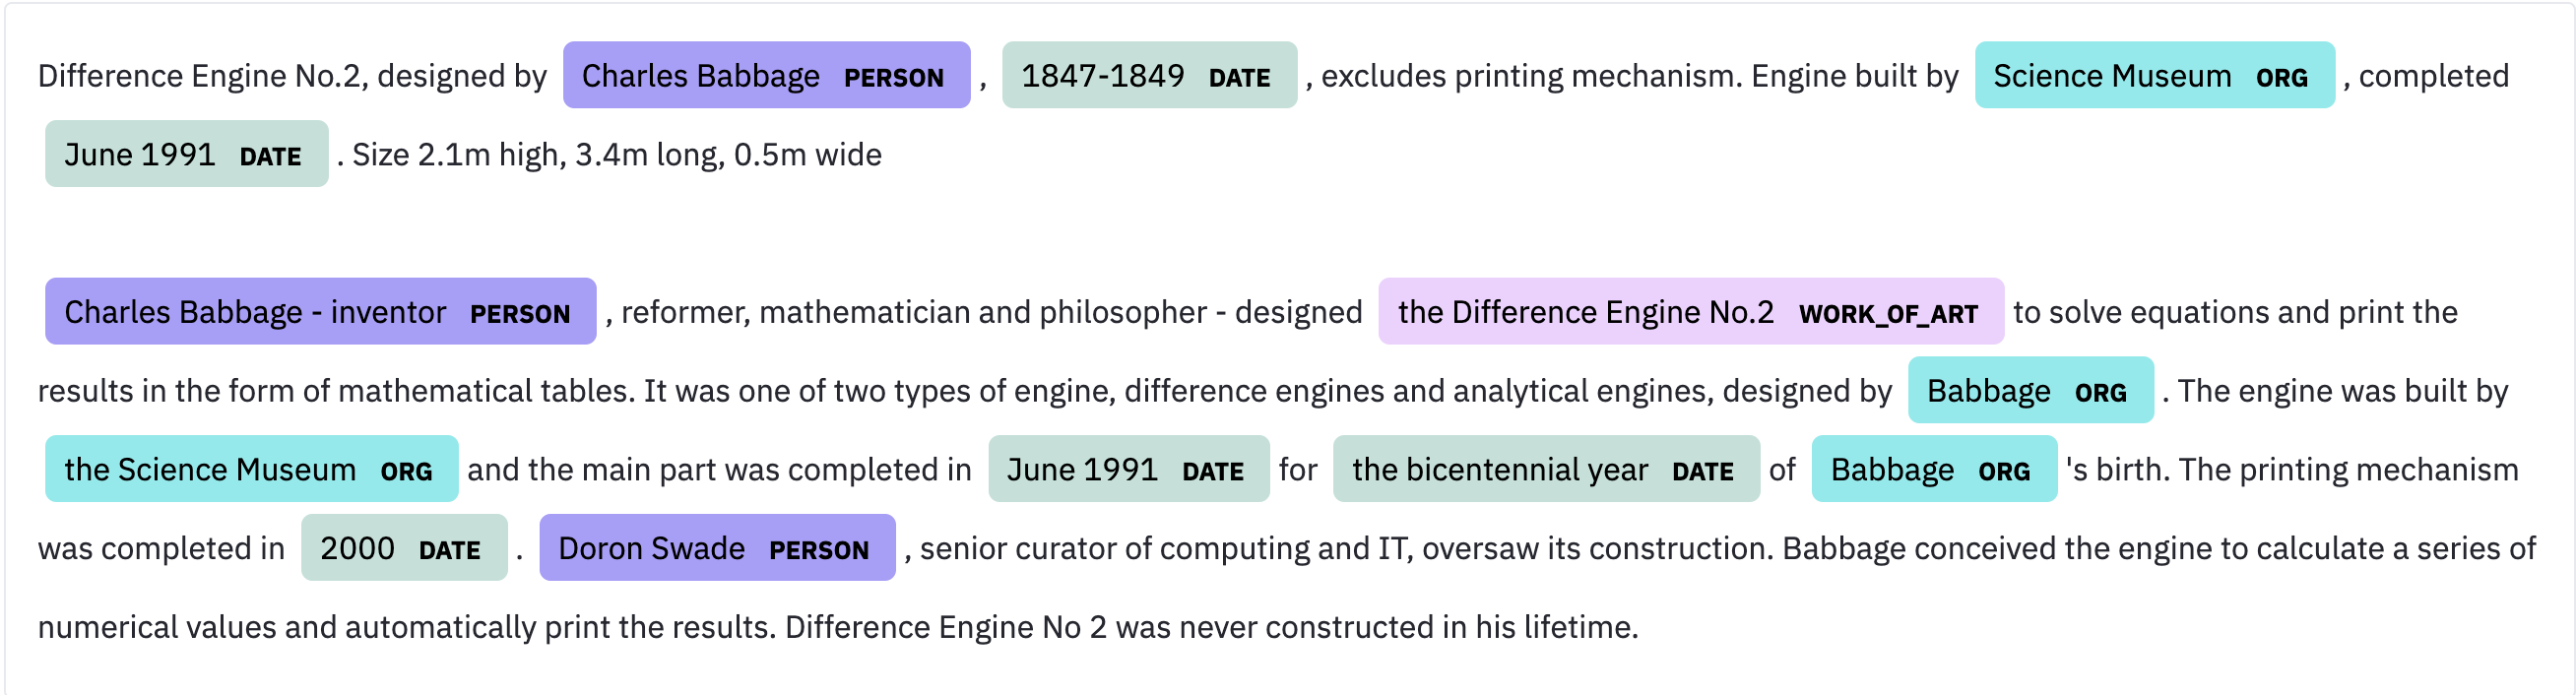 Screenshot description field of Difference Engine No.2, designed by Charles Babbage, built by Science Museum